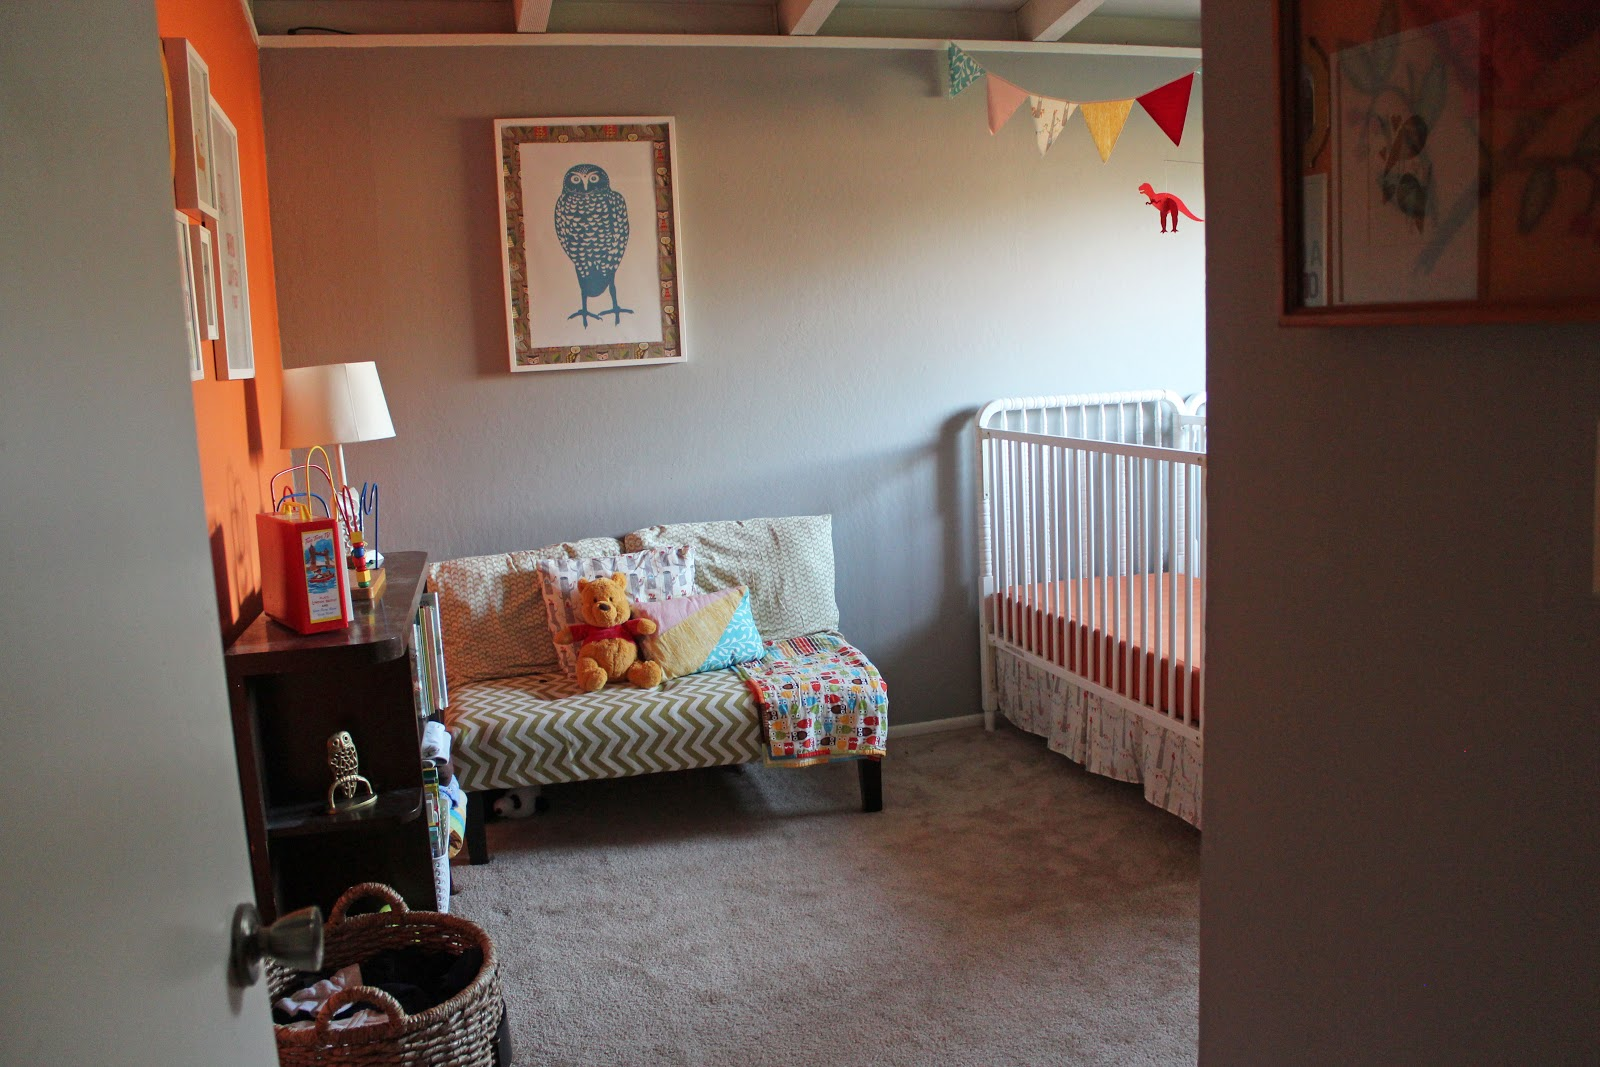 Miranda murdock nursery two Master bedroom with a crib